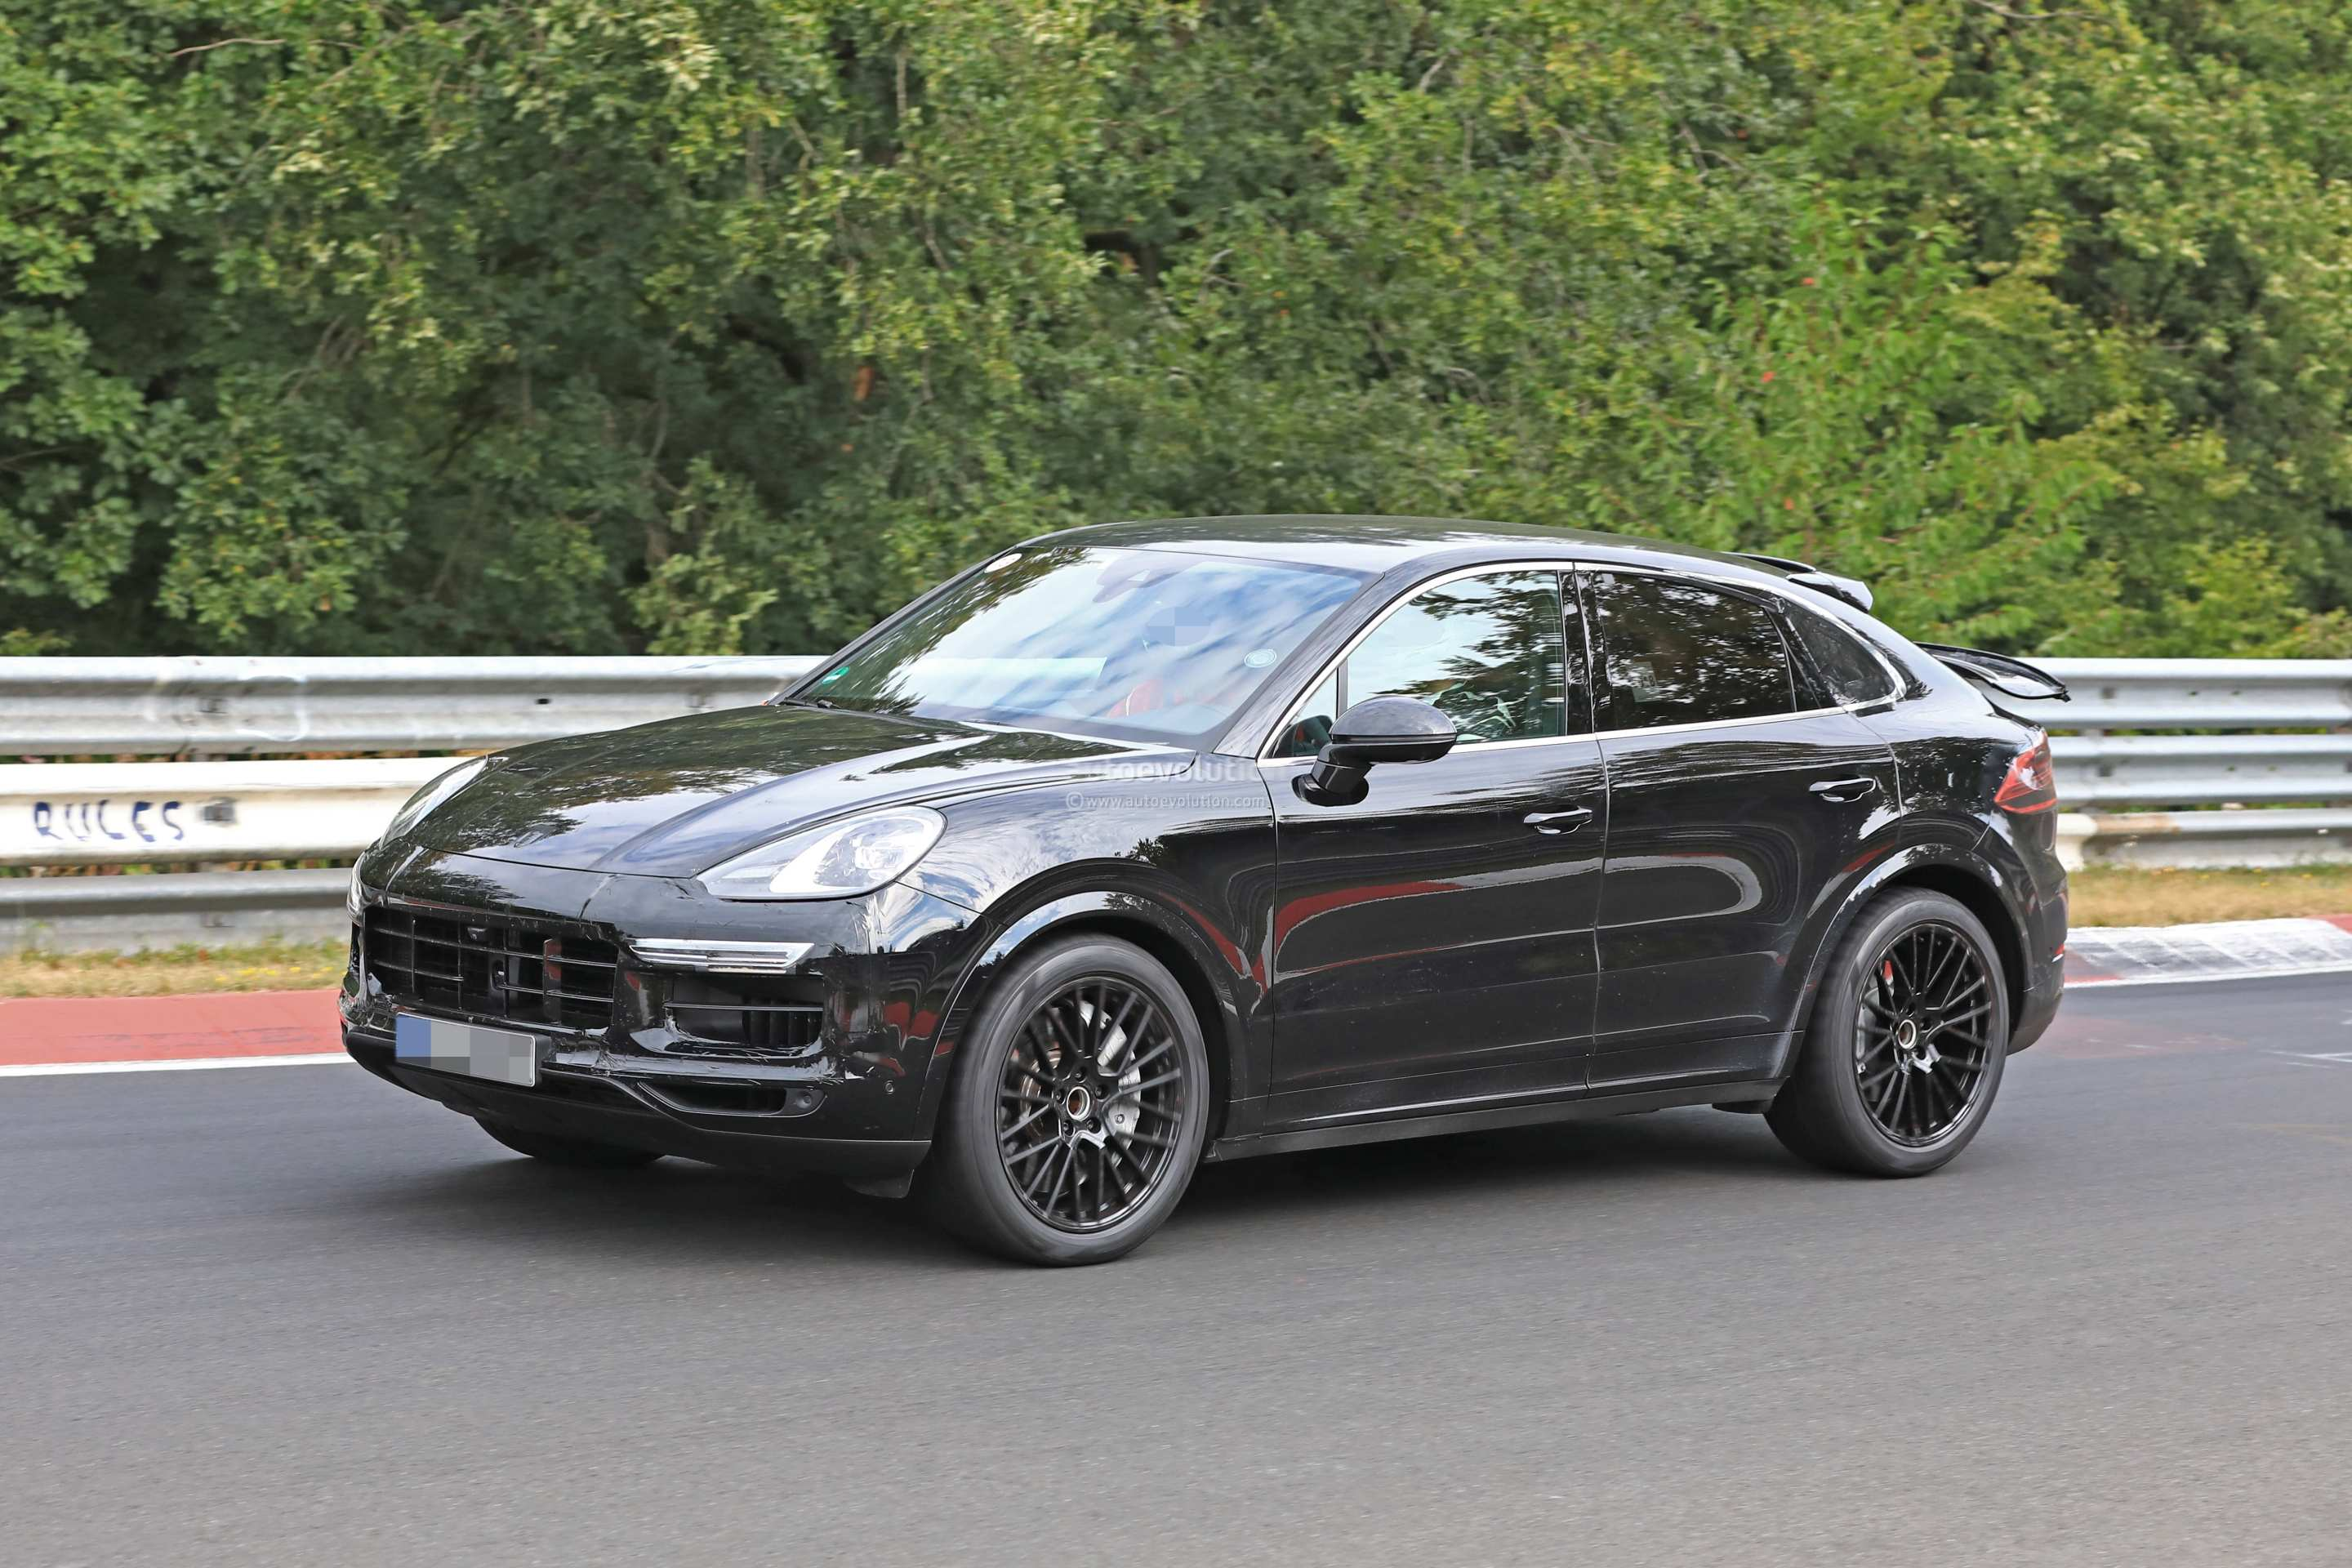 84 New 2020 Porsche Cayenne Model Prices